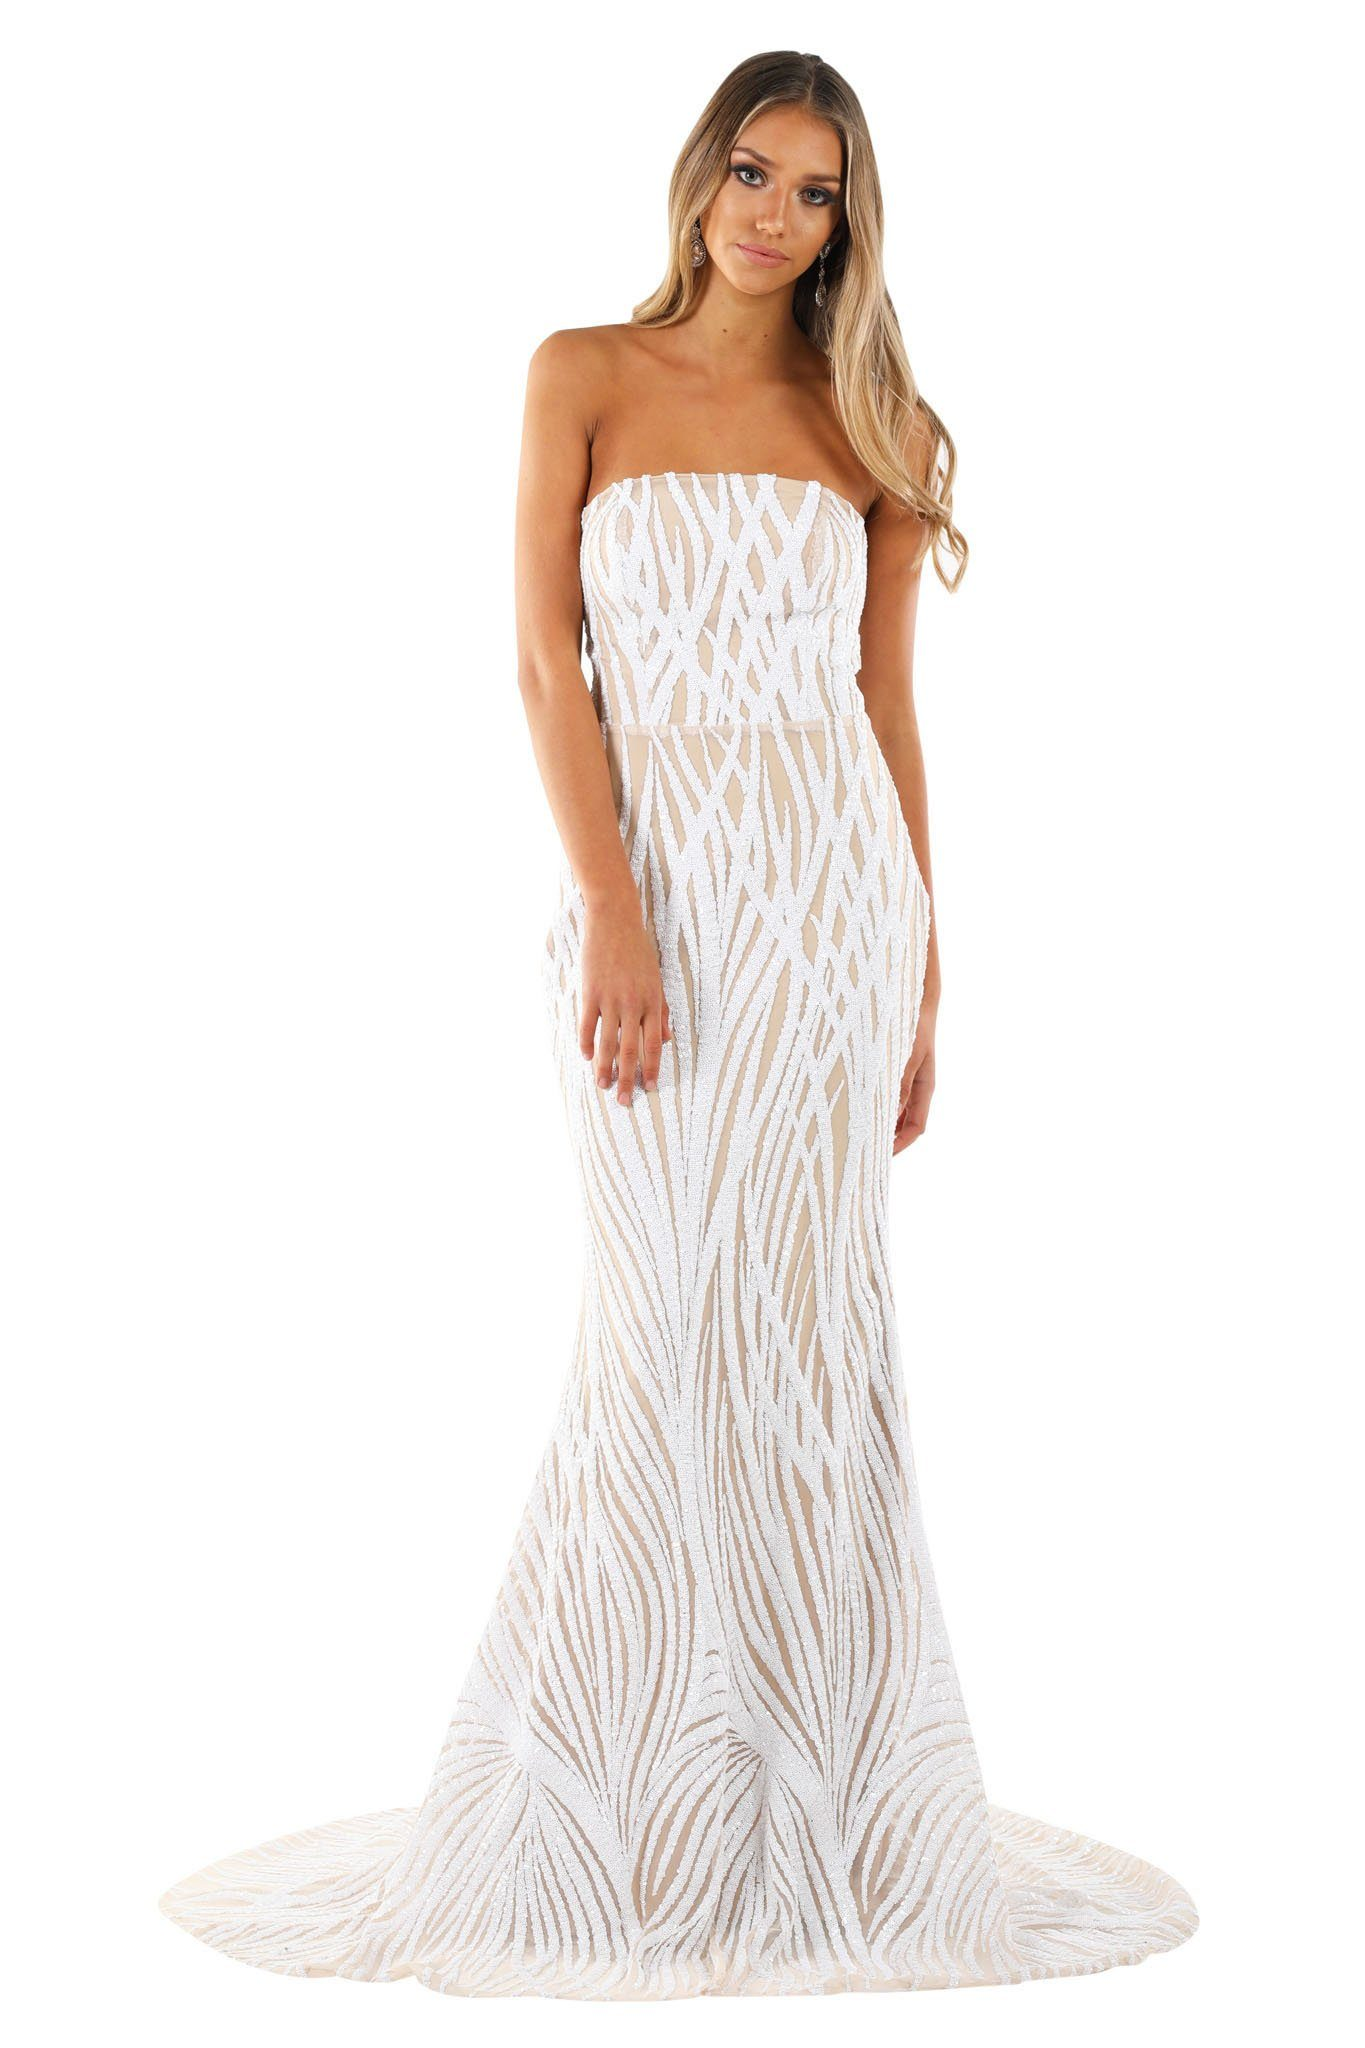 White embroidered sequins nude illusion lining formal long gowns strapless straight neckline long train